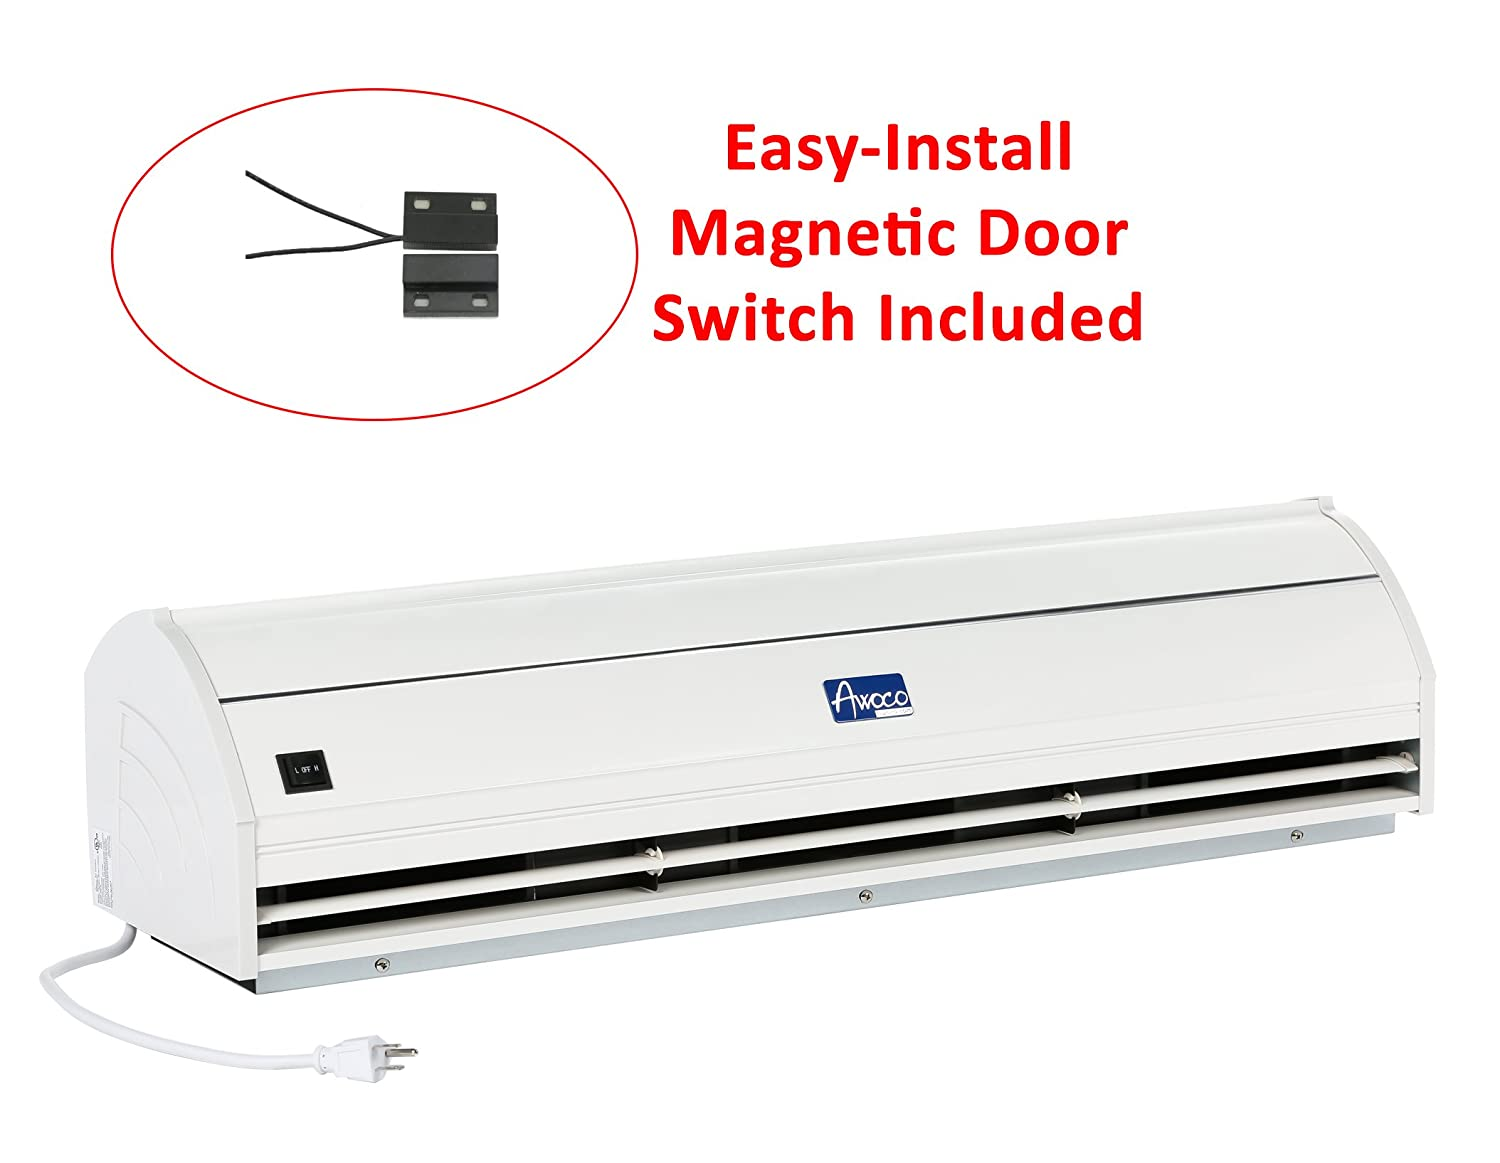 Awoco 60 Elegant 2 Speeds 1500 Cfm Indoor Air Curtain Magnetic Limit Switch Wiring Diagram With An Easy Install Door Home Kitchen